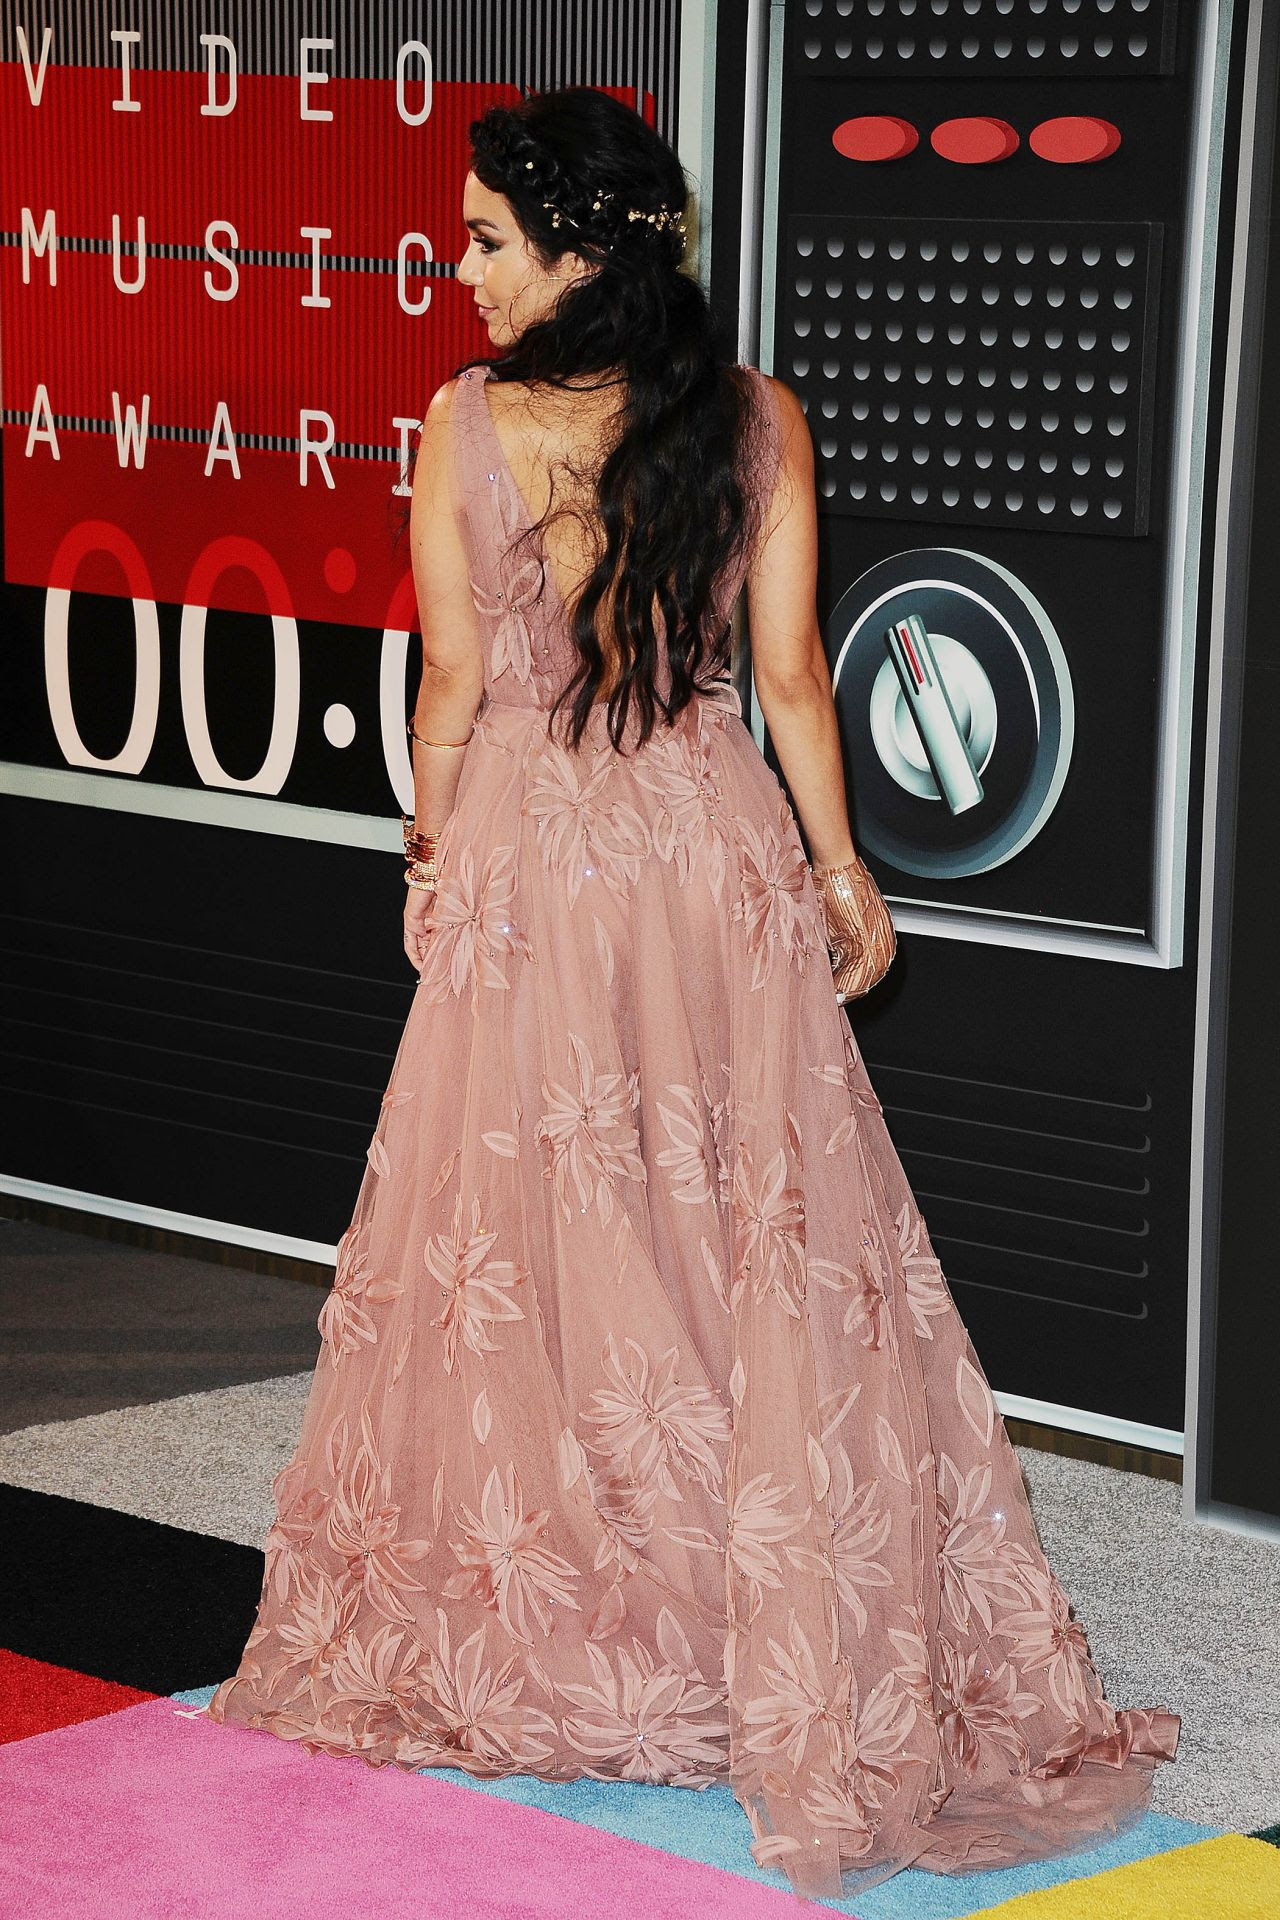 http://celebmafia.com/wp-content/uploads/2015/08/vanessa-hudgens-2015-mtv-video-music-awards-at-microsoft-theater-in-los-angeles_10.jpg